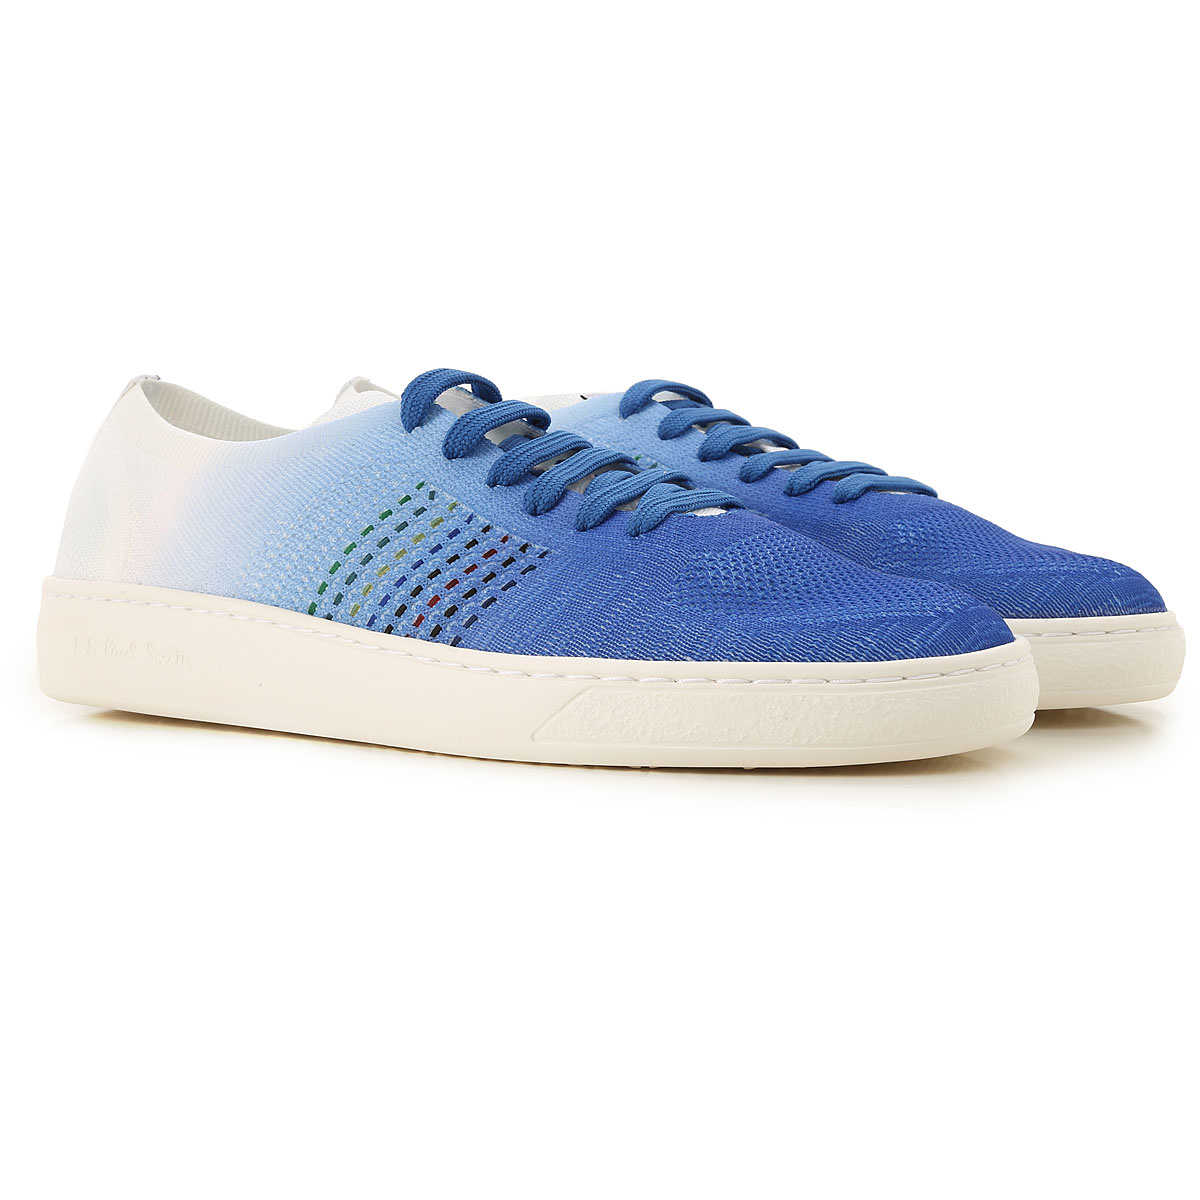 Paul Smith Sneakers for Men On Sale Blue - GOOFASH